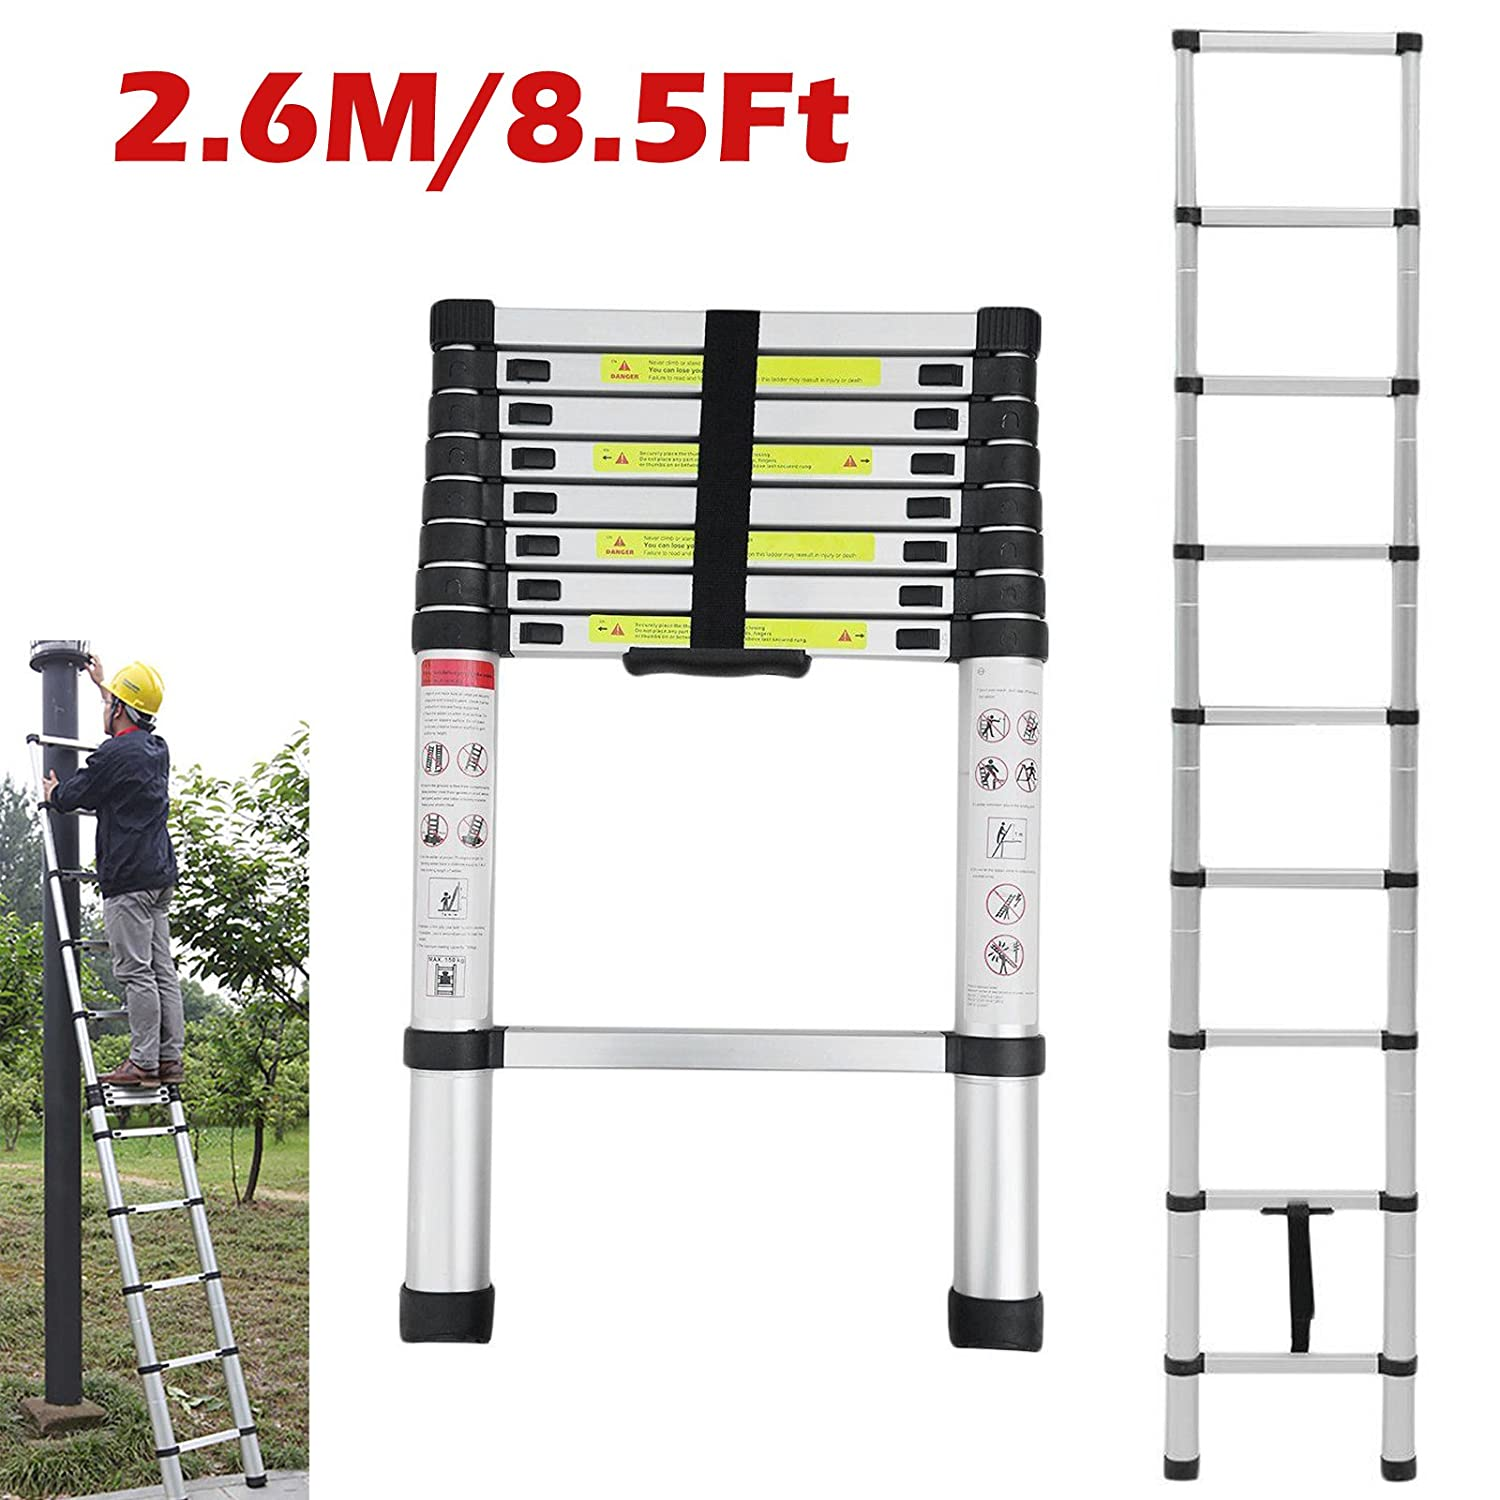 Expandable Step Ladder 2.6M / 8.5ft Aluminium Ladders Telescopic 9 Step Save Space Easy to Carry Lightweight Extending for Loft Attic Home Office Indoor Outdoor Roof Garden Work dicn factory